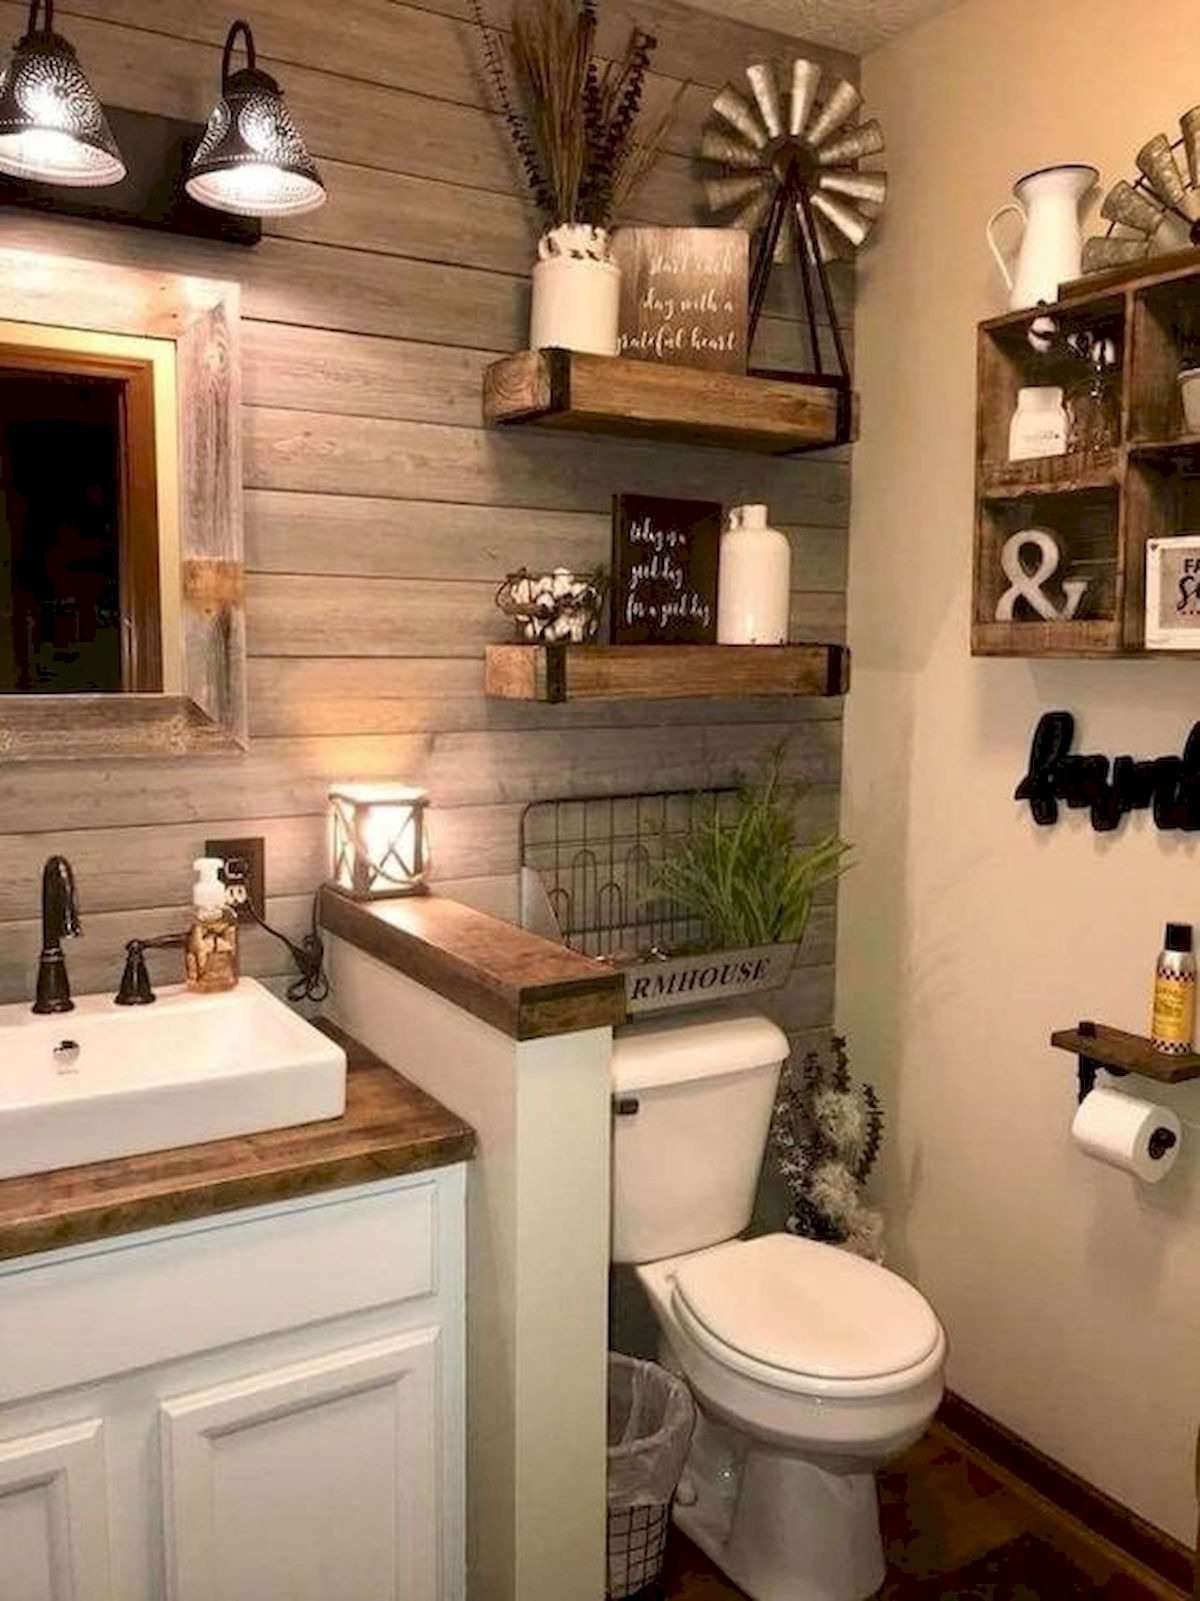 59 Best Farmhouse Wall Decor Ideas for Bathroom 48